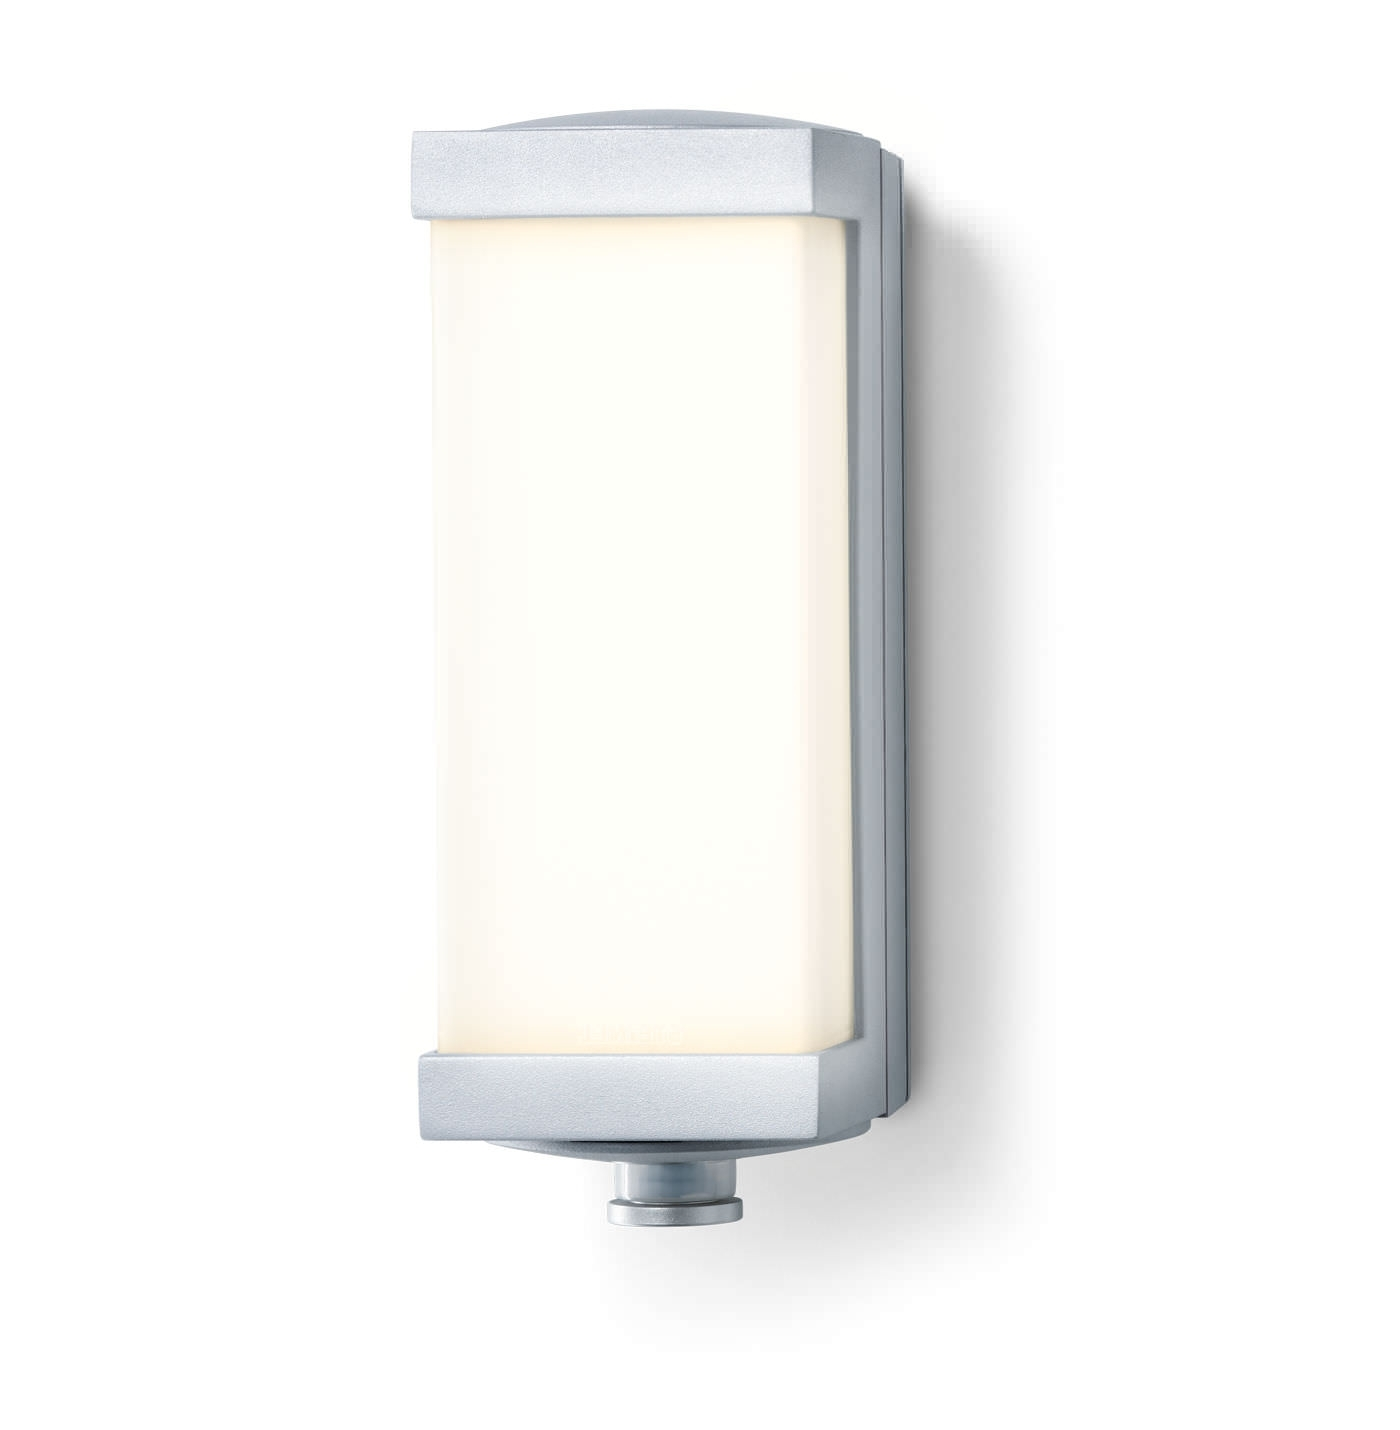 Popular Led Outdoor Wall Lights With Motion Sensor Throughout Contemporary Wall Light / Outdoor / Aluminum / Metal – L 666 Led (View 16 of 20)